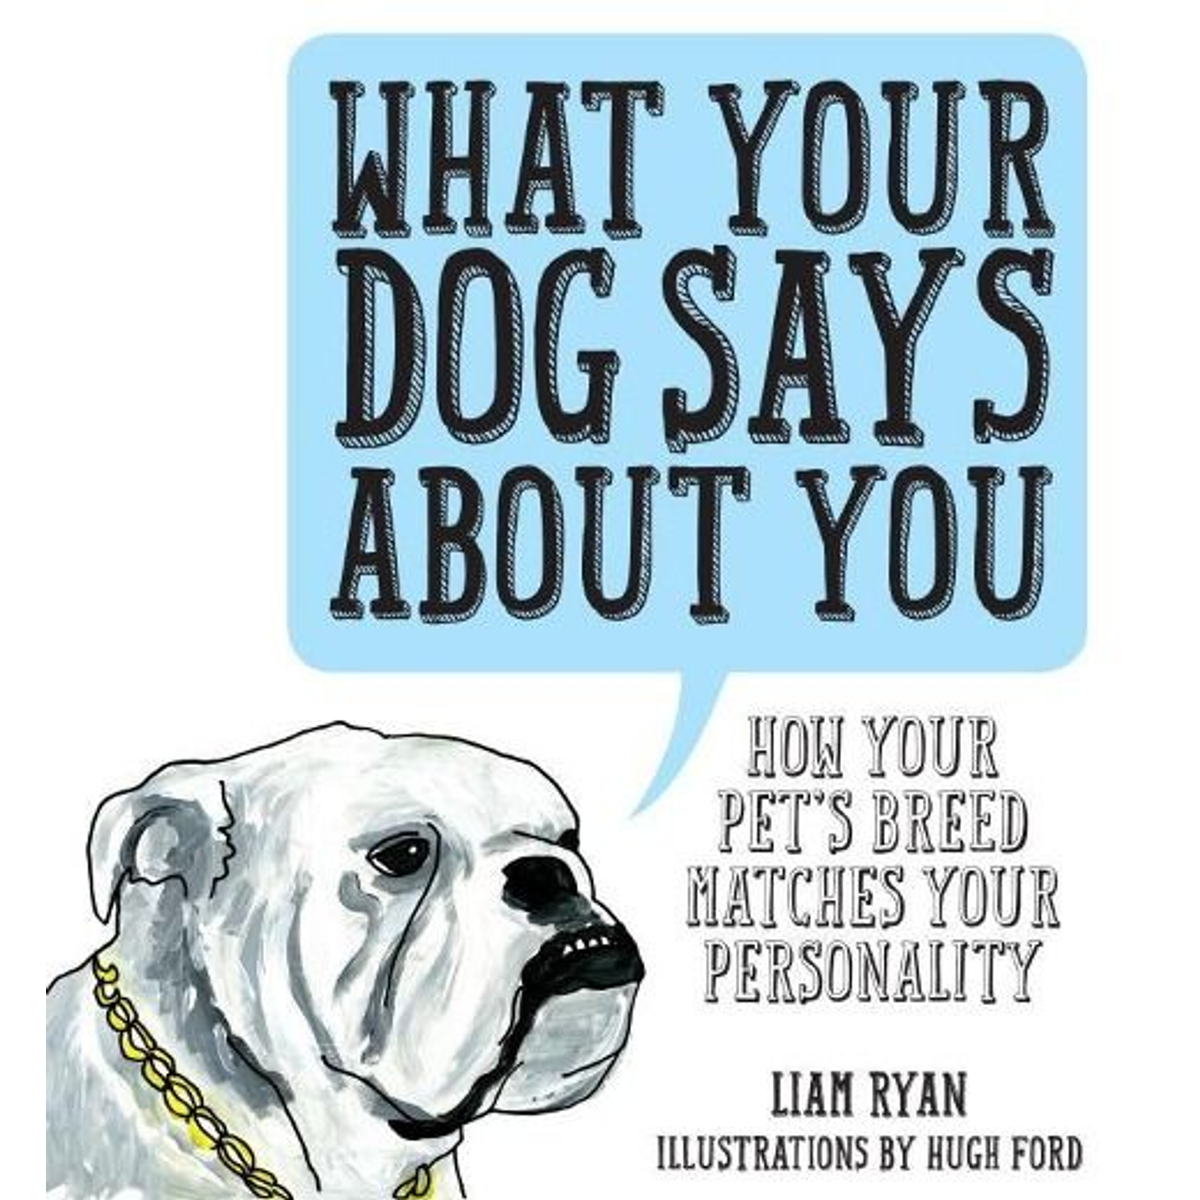 What Your Dog Says about You: How Your Pet's Breed Matches Your Personality